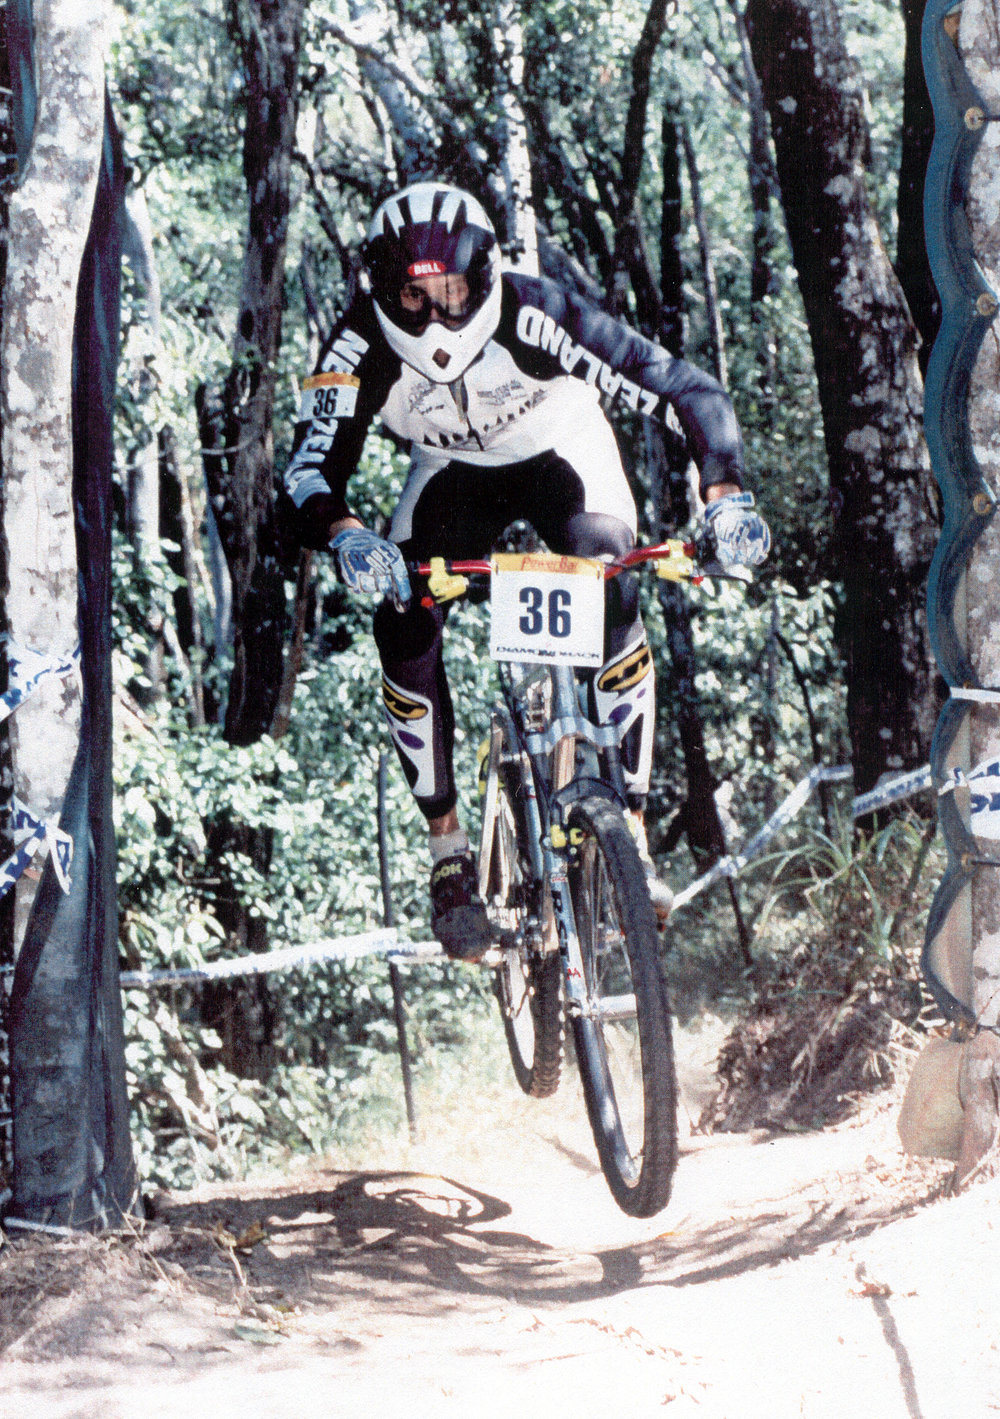 1996 World Championships, Cairns. Home made suspension link to give 150mm travel.